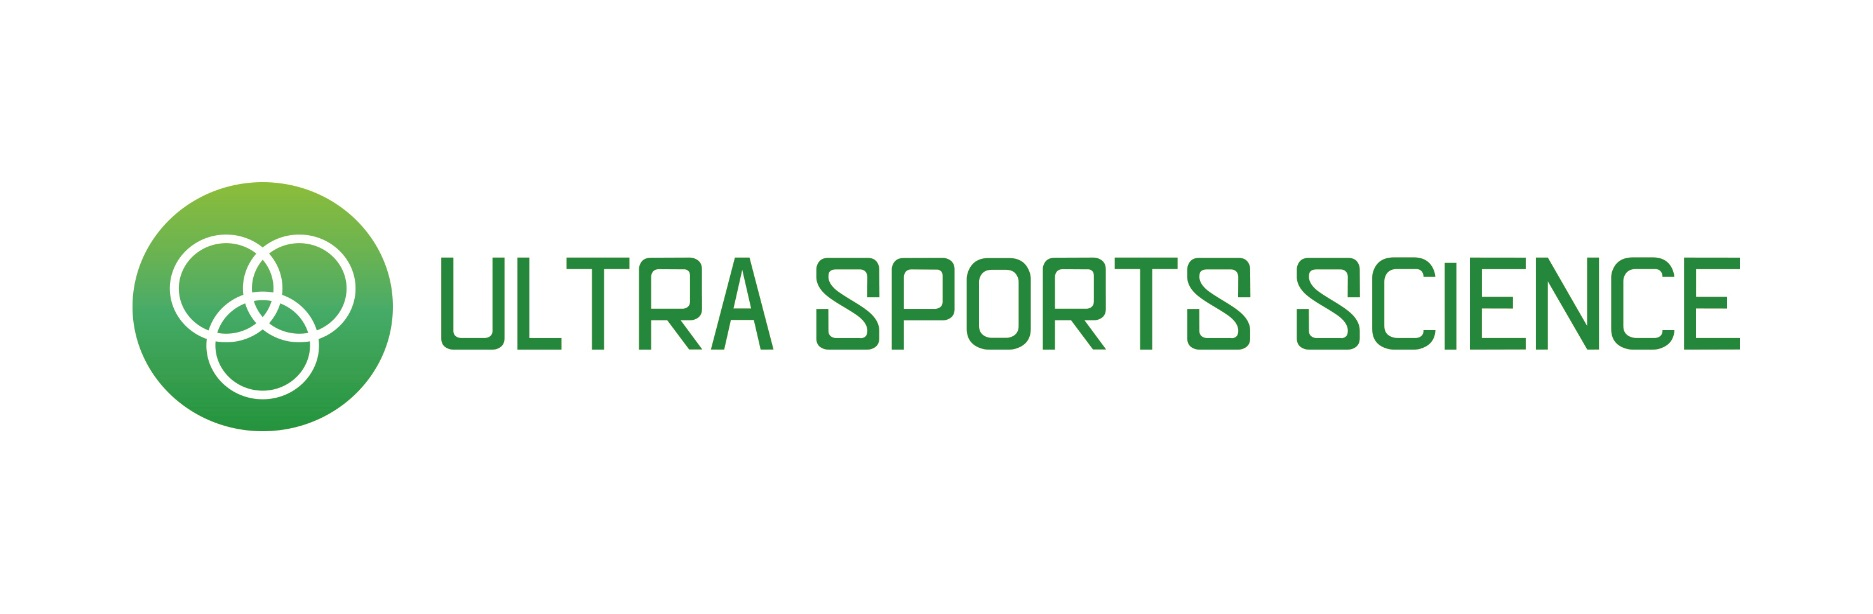 Ultra Sports Science